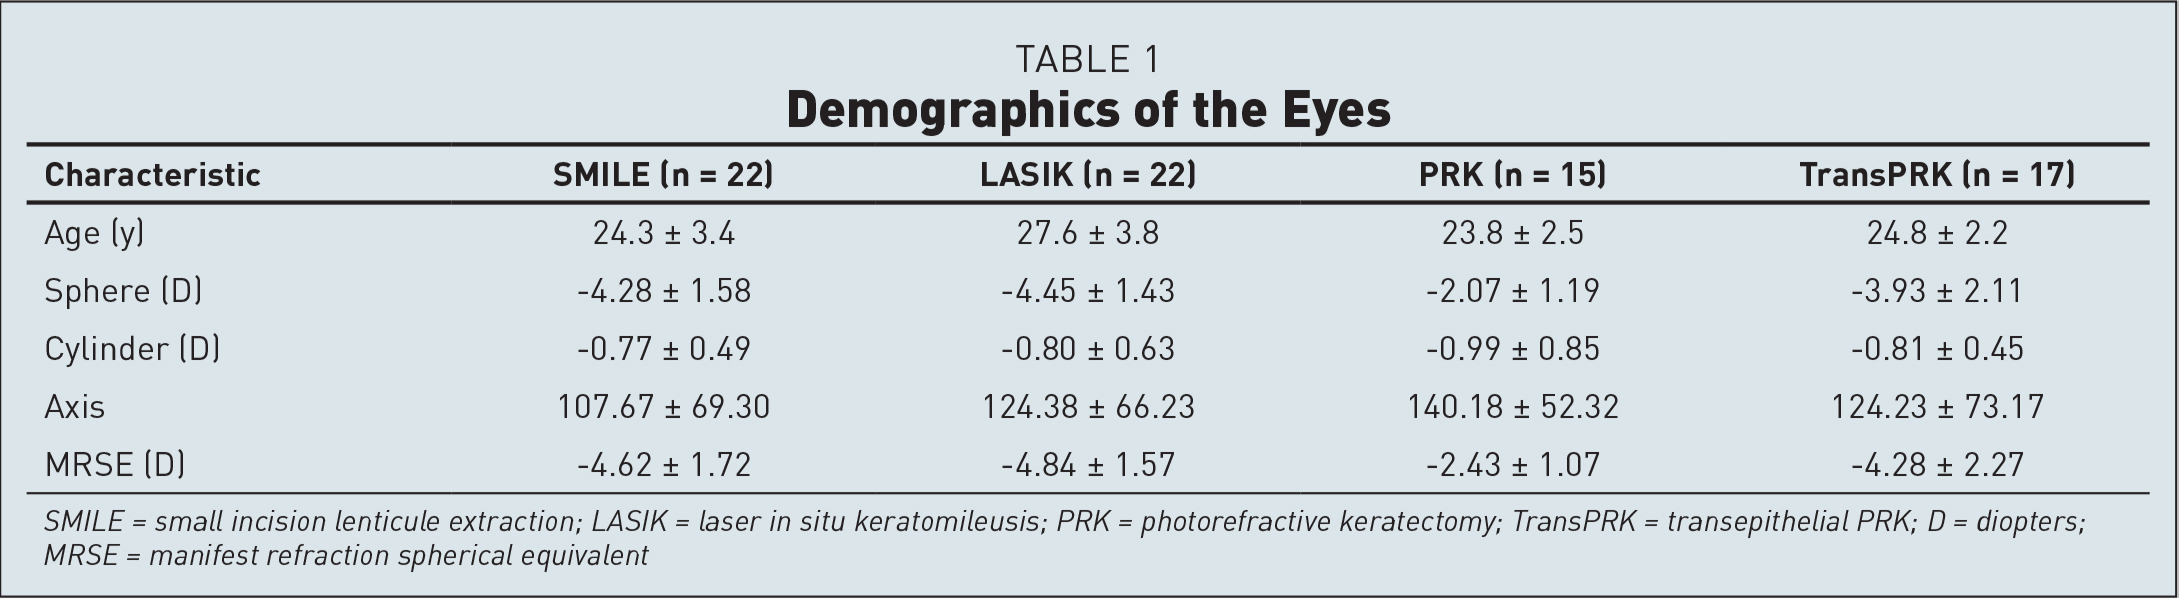 Demographics of the Eyes